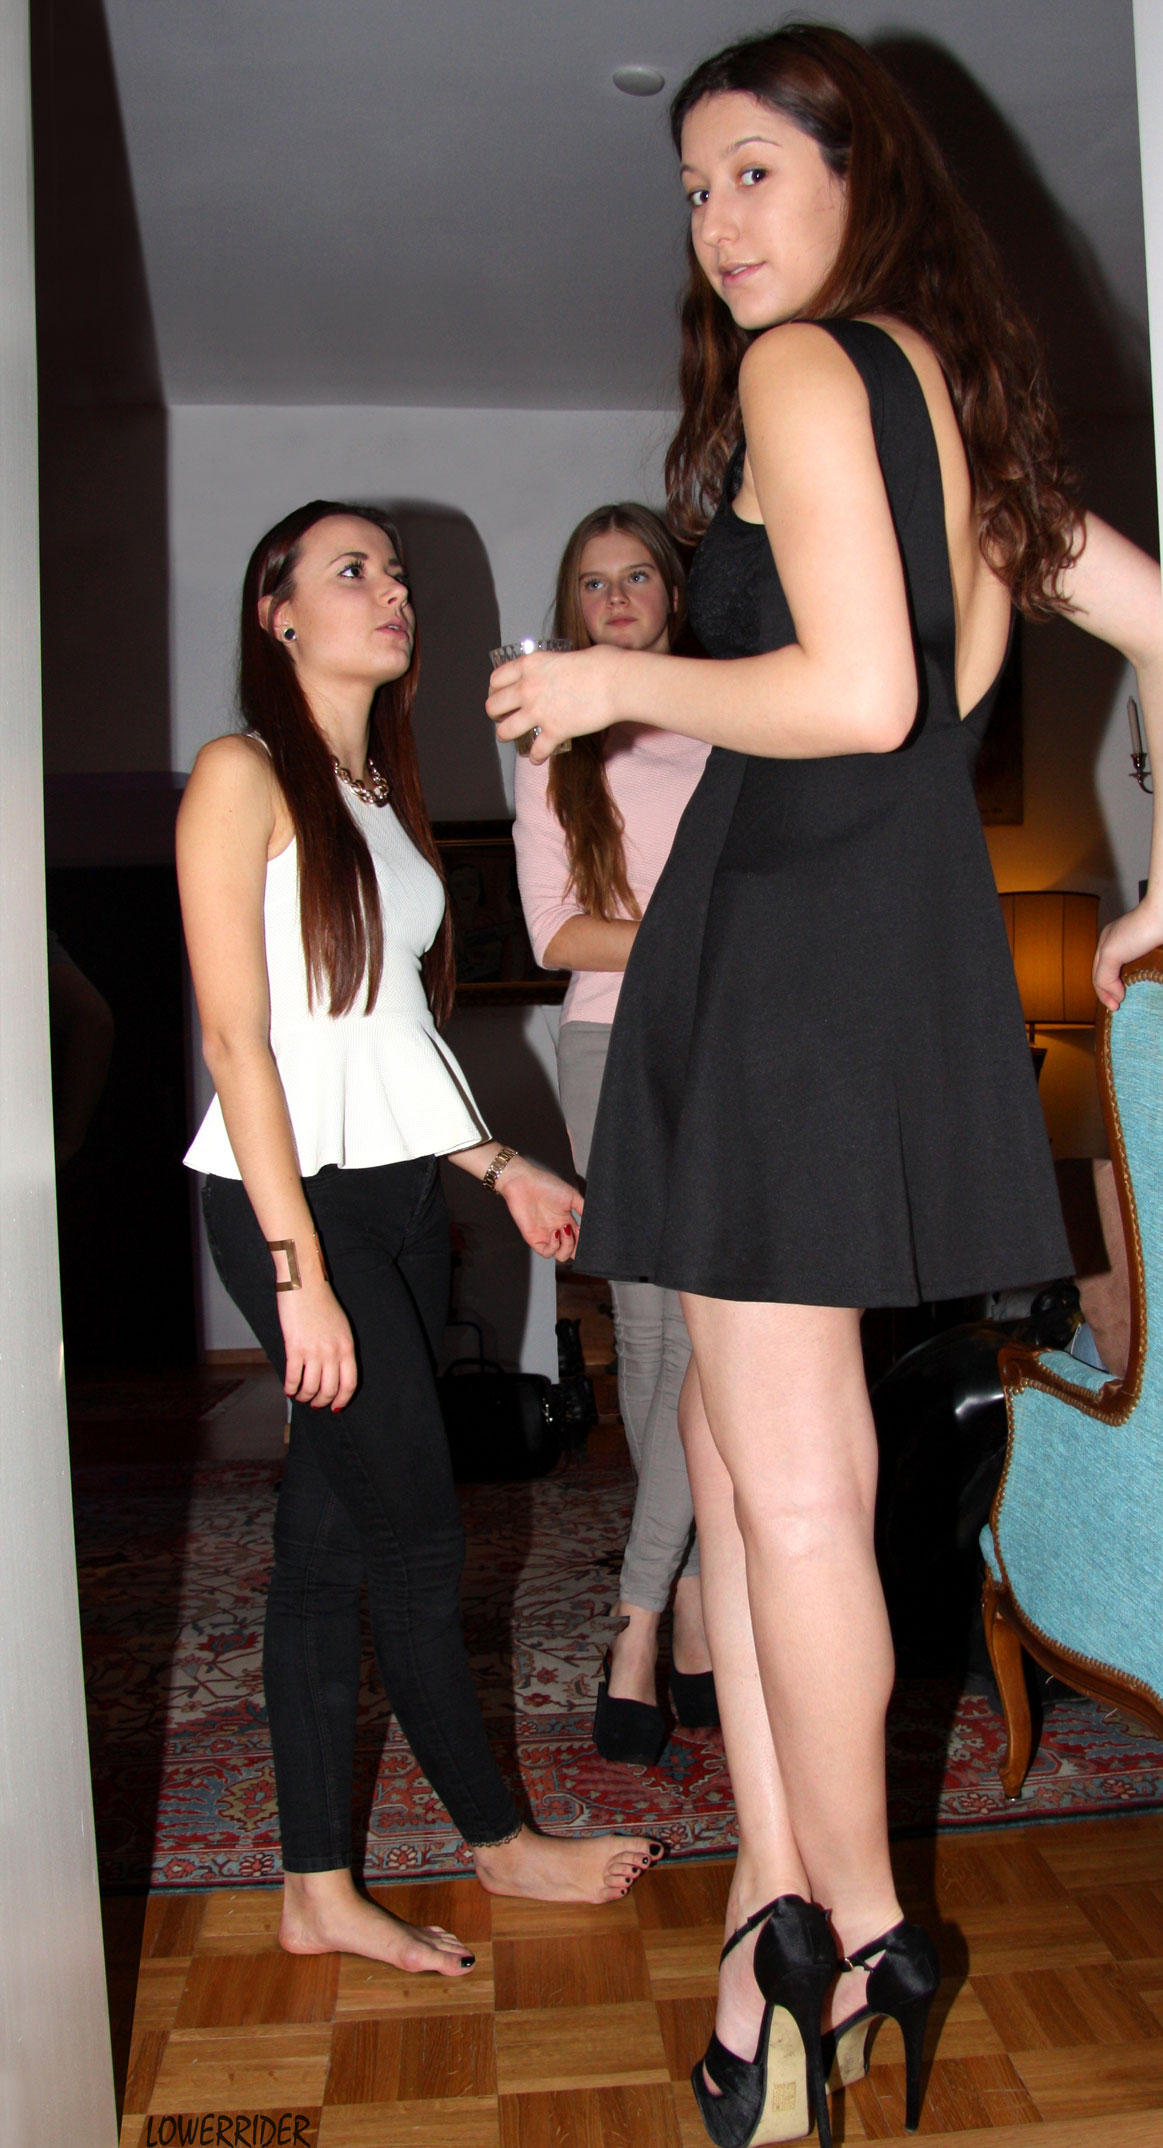 Tall Girl Short Girl At Party By Lowerrider On Deviantart